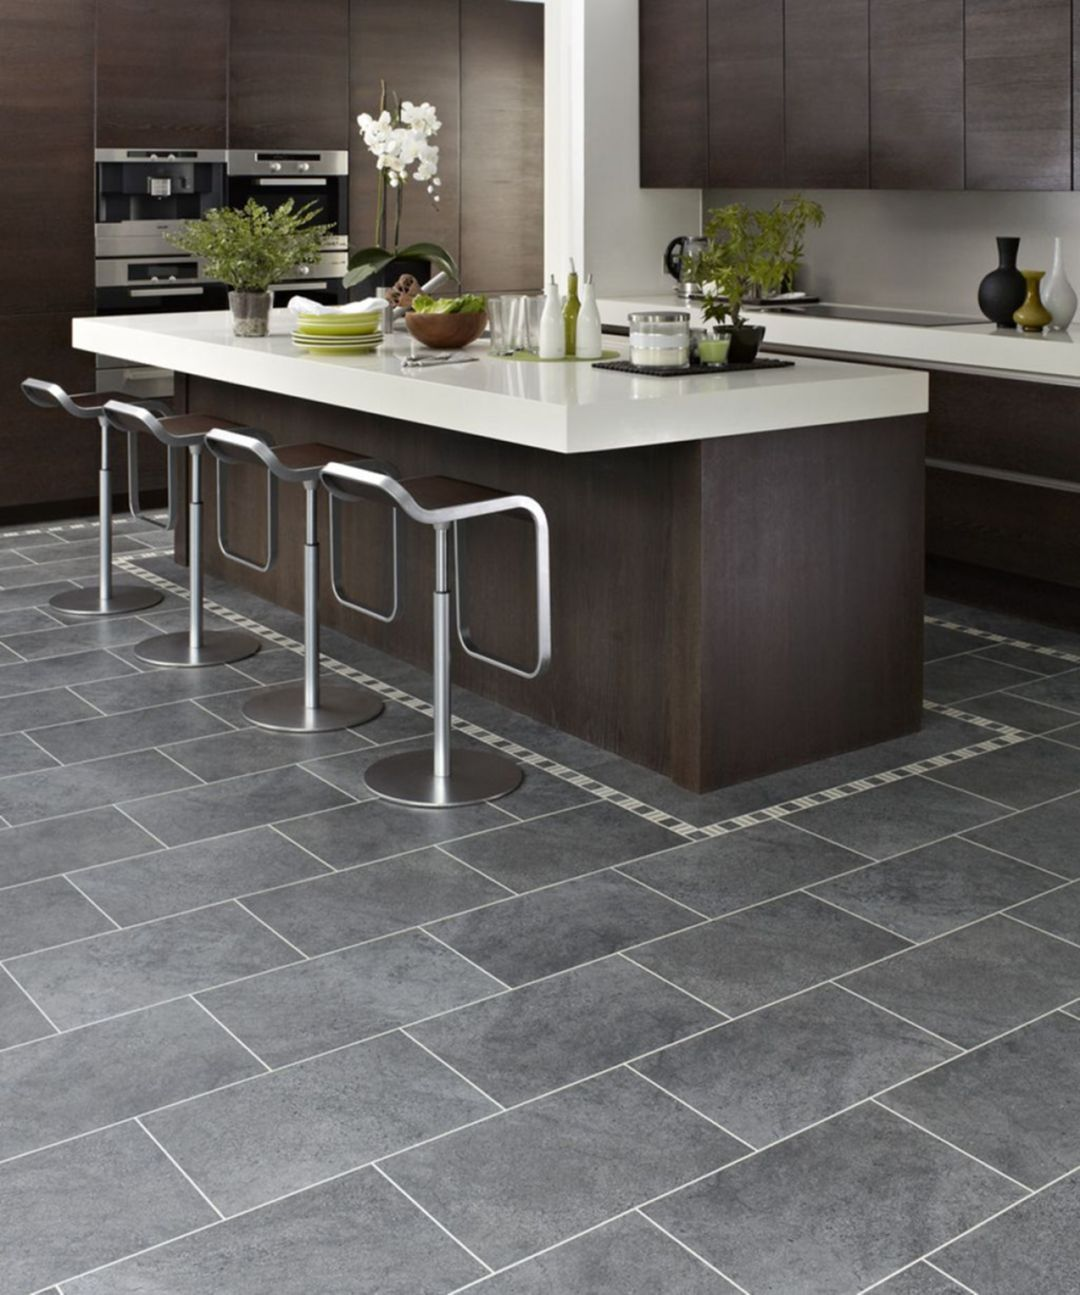 27 Awesome Kitchen Floor Design Ideas That Looks More Stylish Grey Kitchen Floor Modern Kitchen Flooring Grey Tile Kitchen Floor